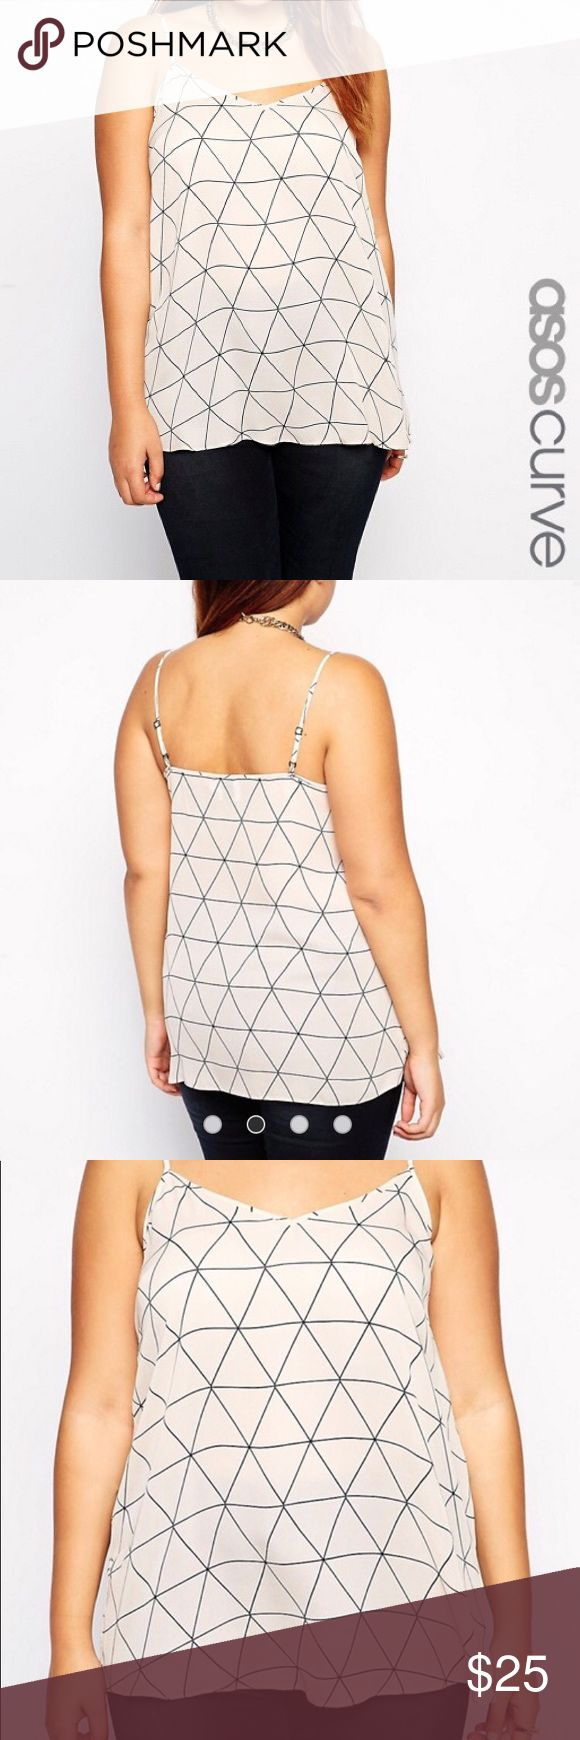 ASOS Curve Cami Top Diamond Geometric sz24 NWOT ASOS curve diamond print cami top  US size 24  New without tags, never worn   Color is a very pale pink/peach with black diamond pattern   100% polyester, machine washable ASOS Curve Tops Tank Tops